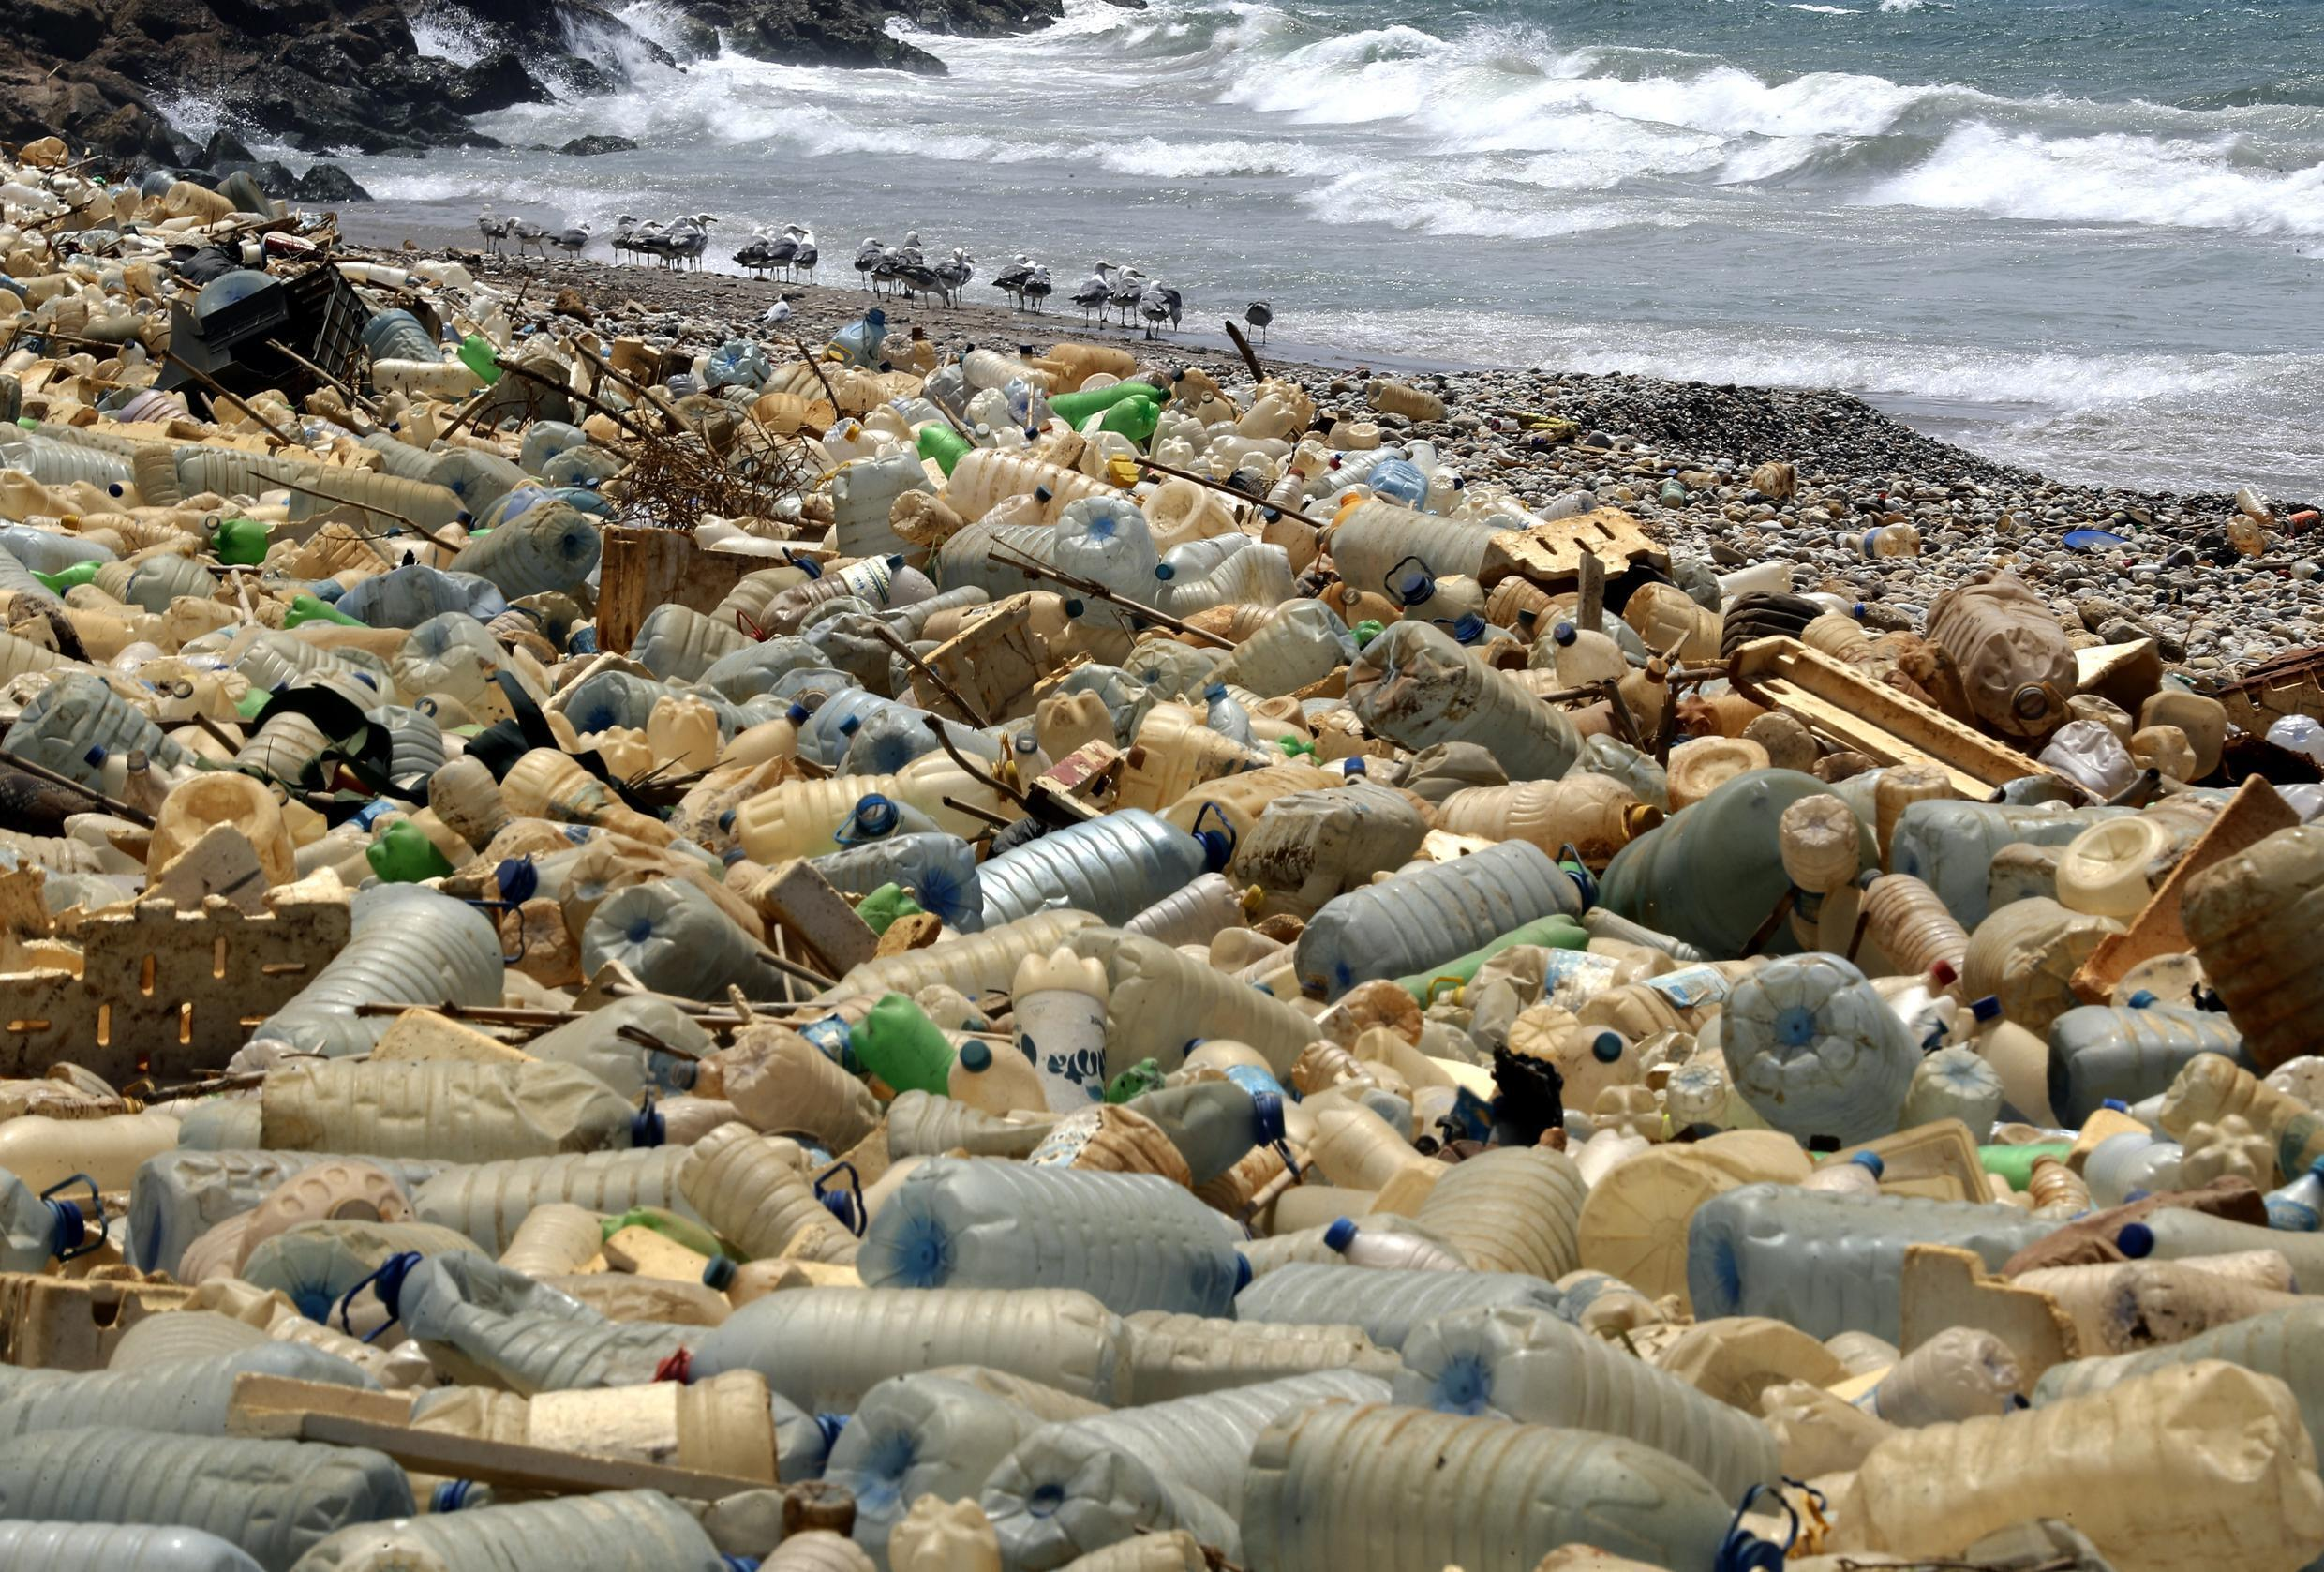 Plastic bottles piling up at the shores of the Mediterranean Sea.